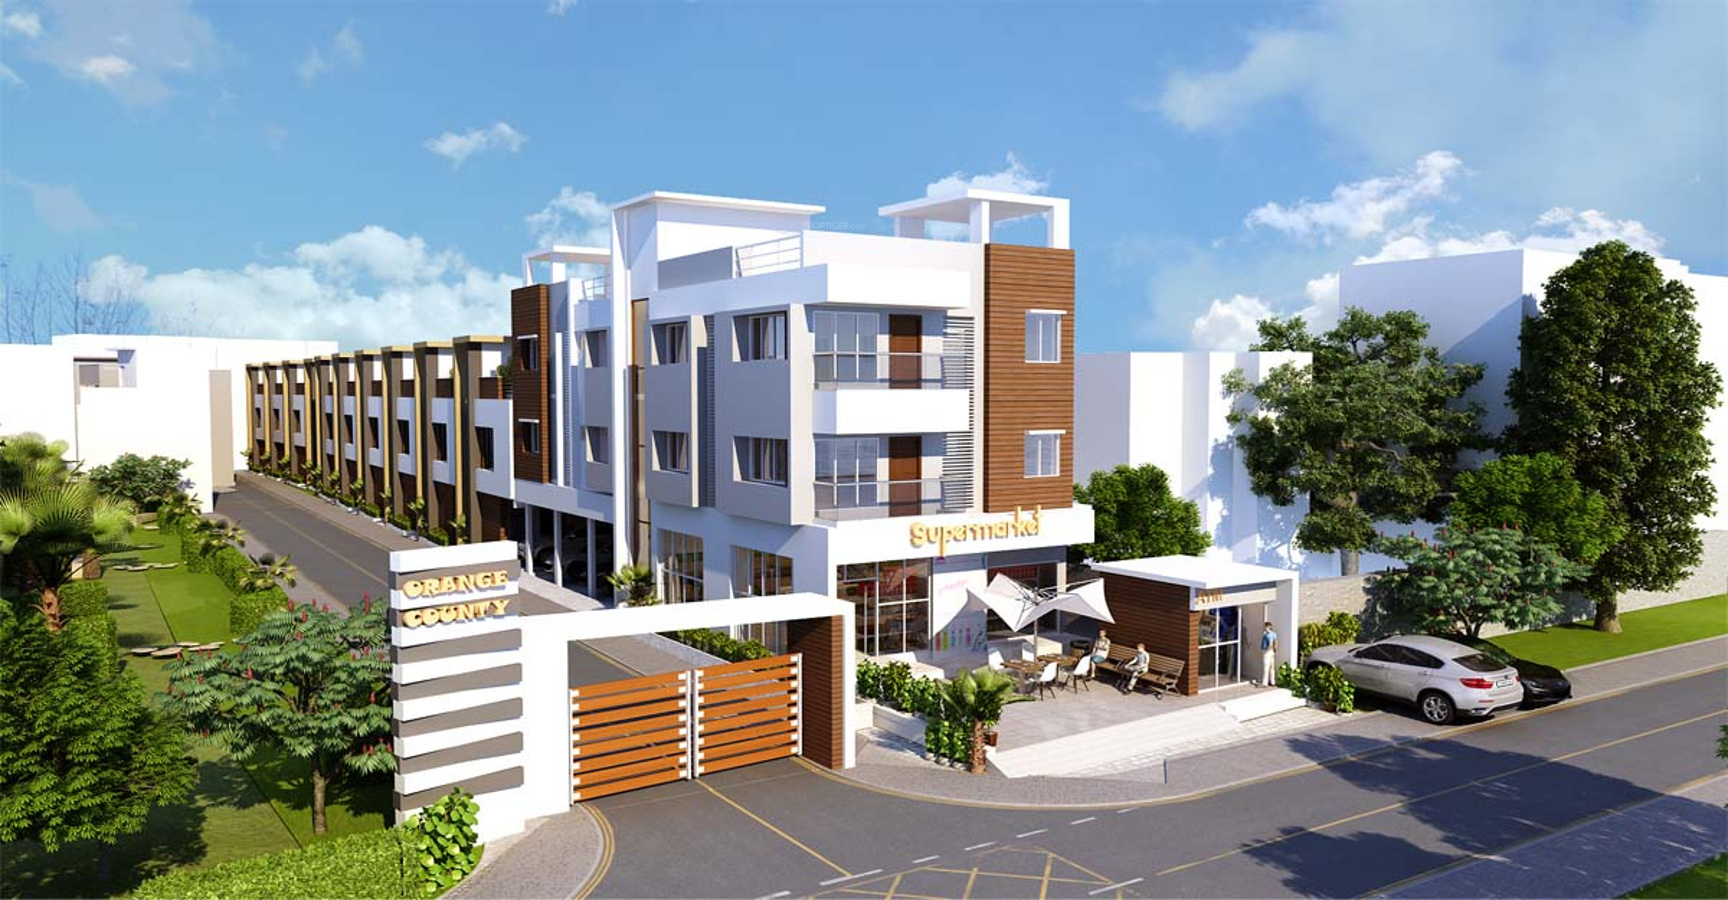 671 Sq Ft 2 Bhk 2t Apartment For Sale In Ms Foundations Orange County Apartments Madambakkam Chennai